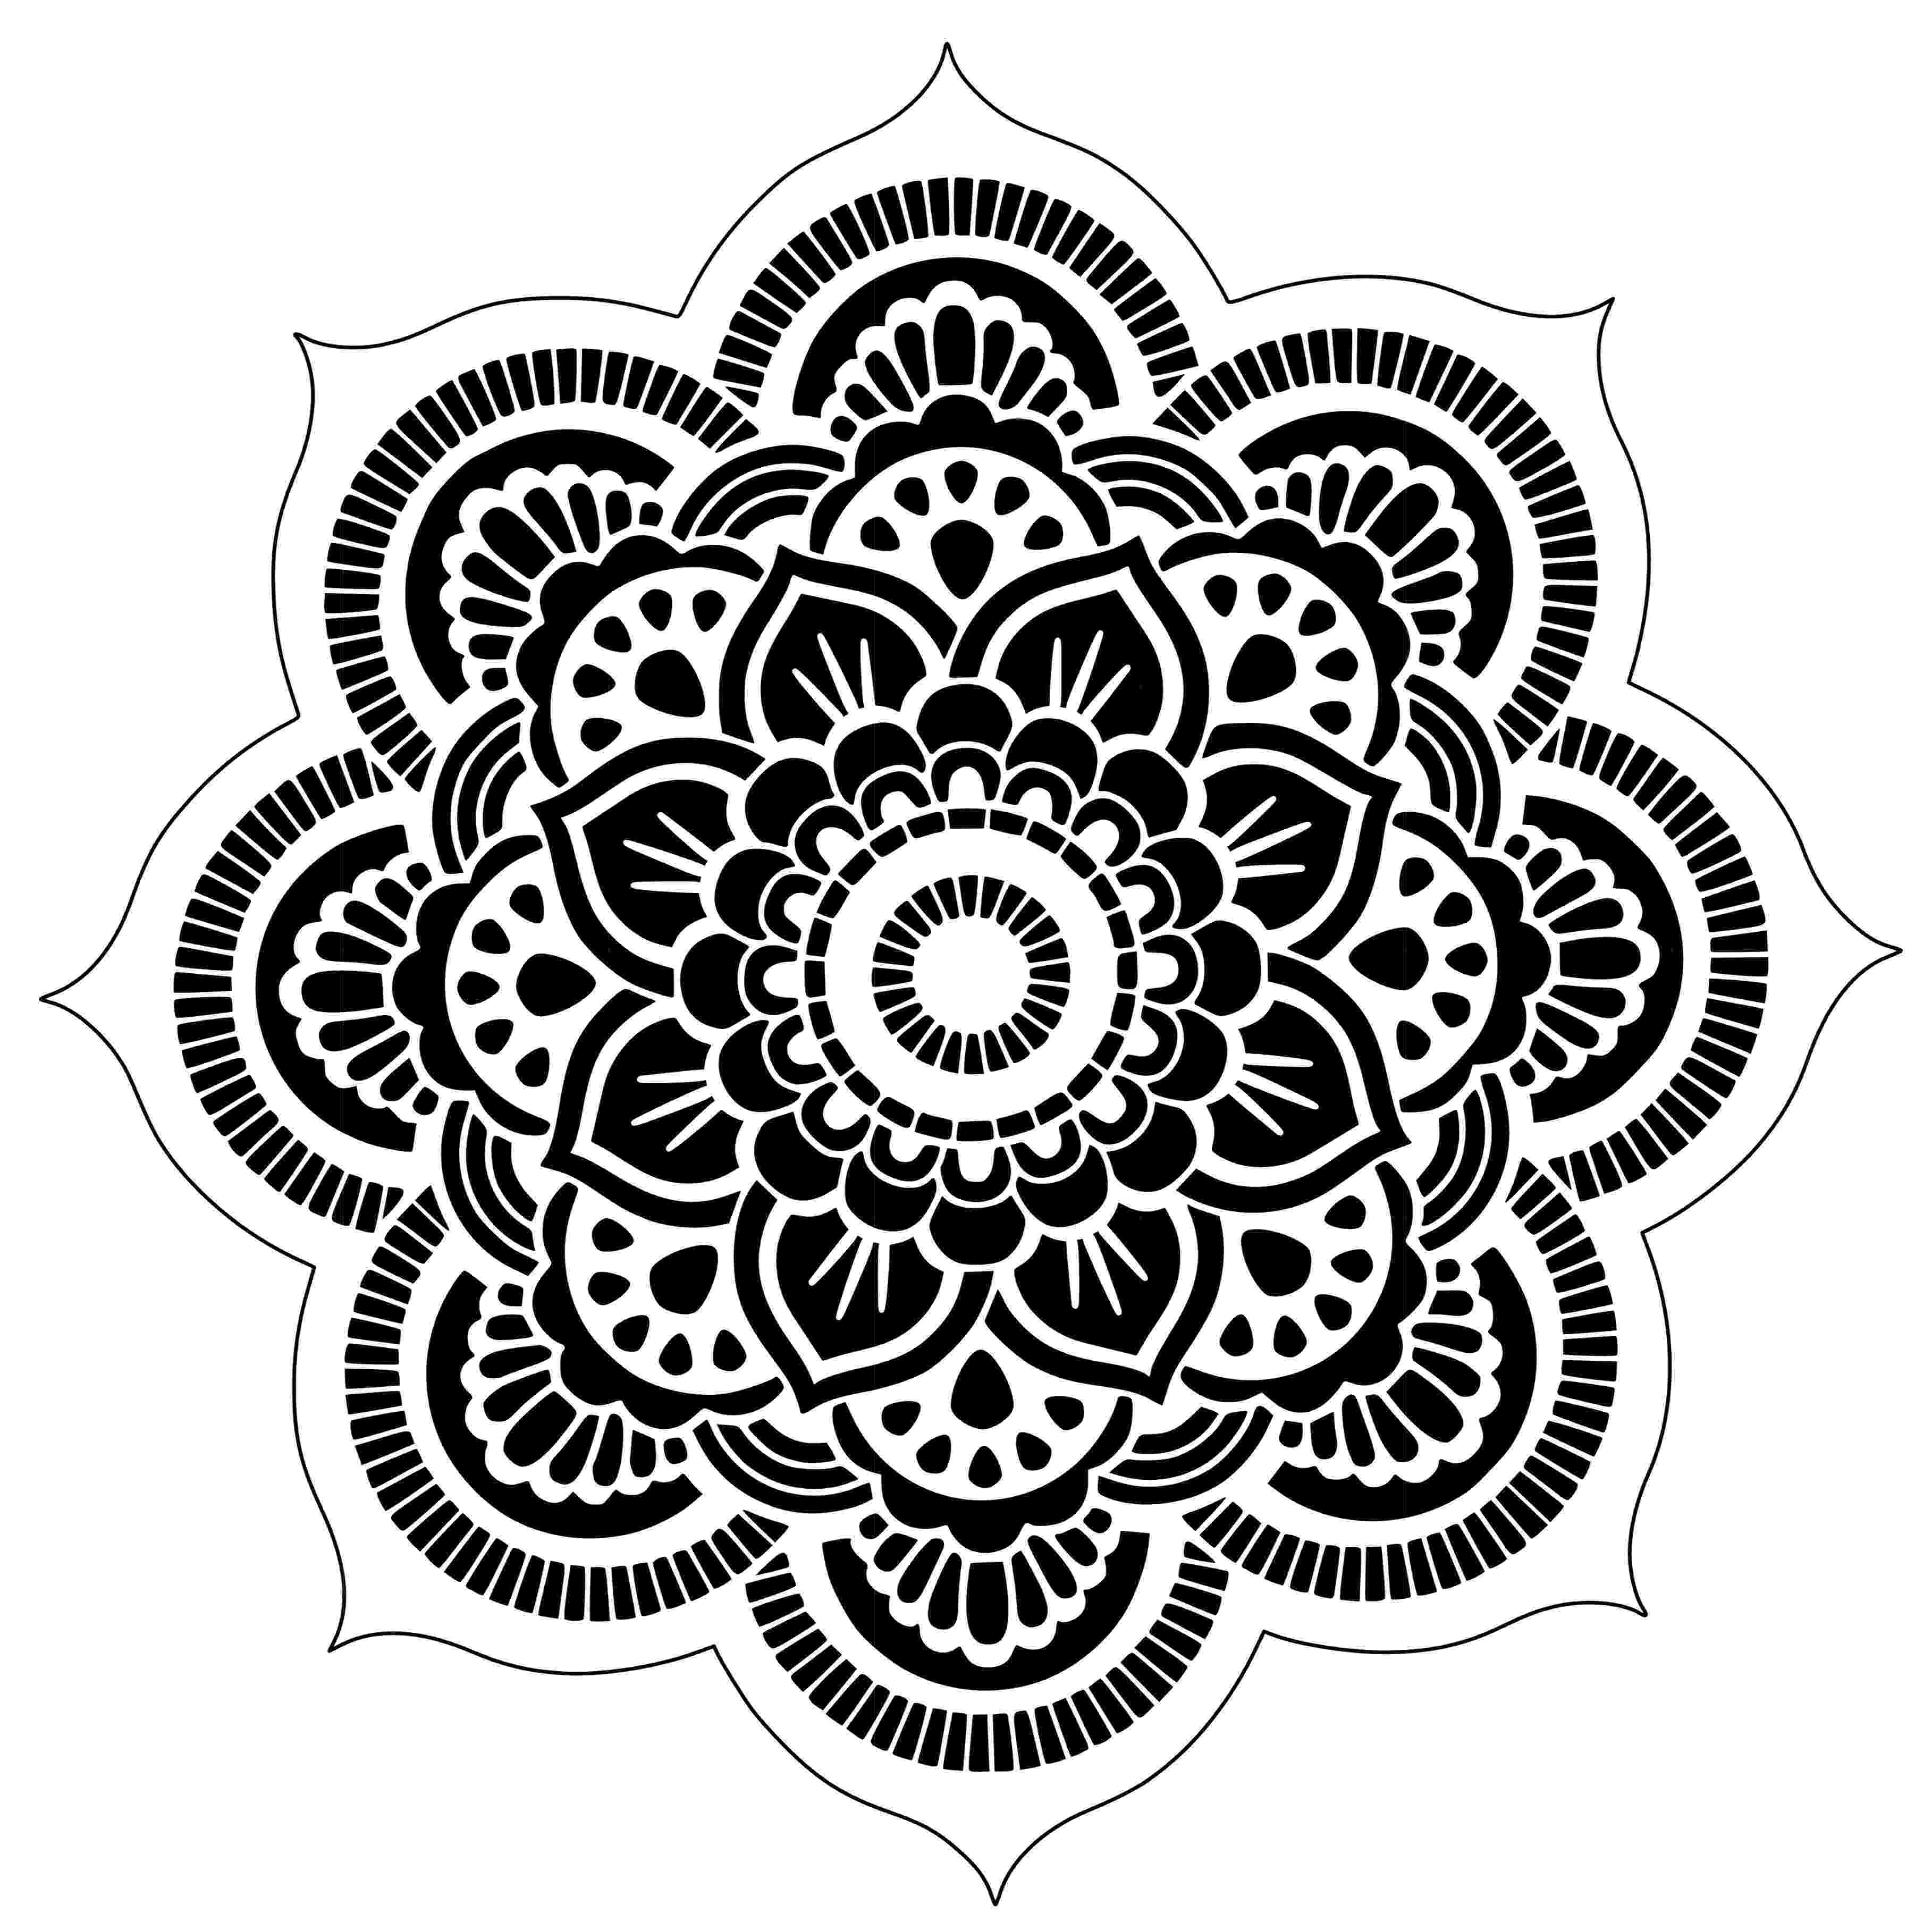 mandala coloring pages for adults free free mandala coloring pages for adults coloring home coloring for mandala adults free pages